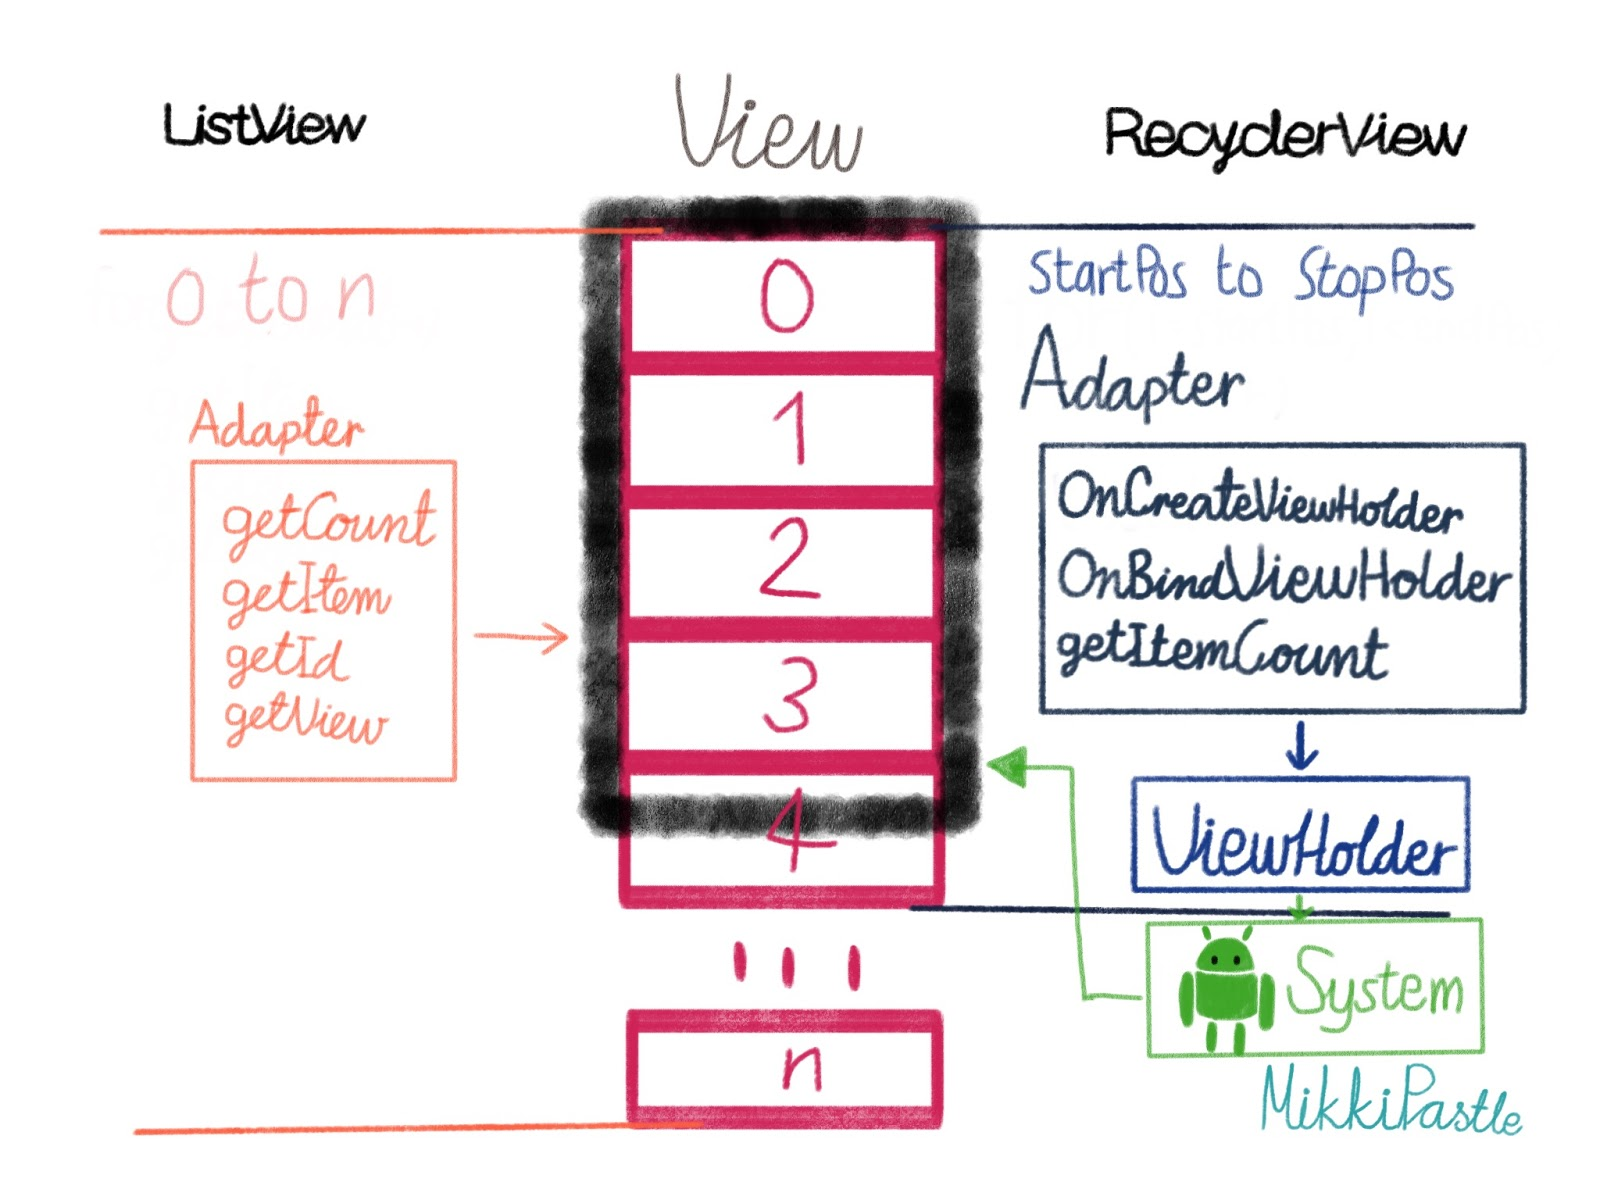 Android listview vs recyclerview